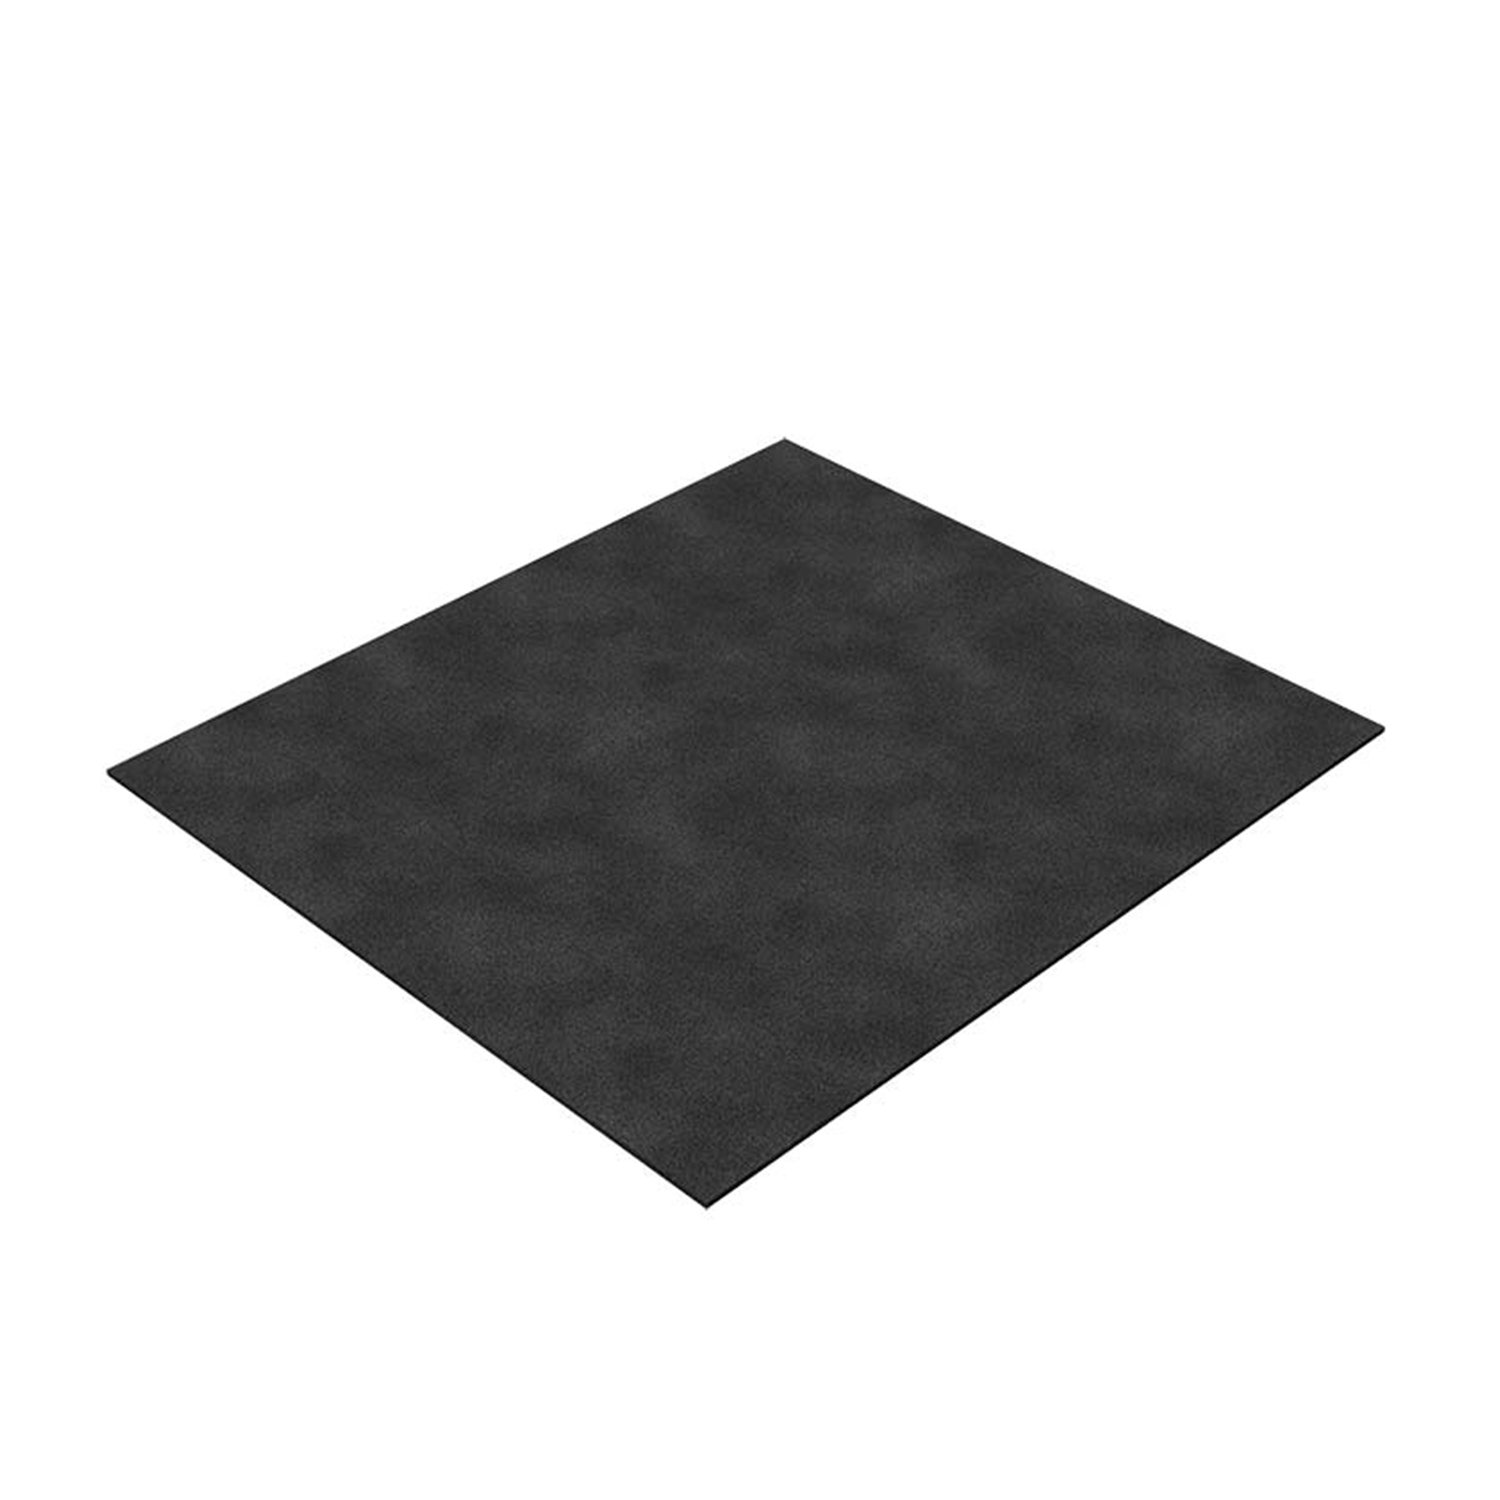 12 Pack | 12''x12'' Fitted Support Pad for MIRO Rooftop Supports | Pipe Support Pad | Made of 100% Recycled Rubber